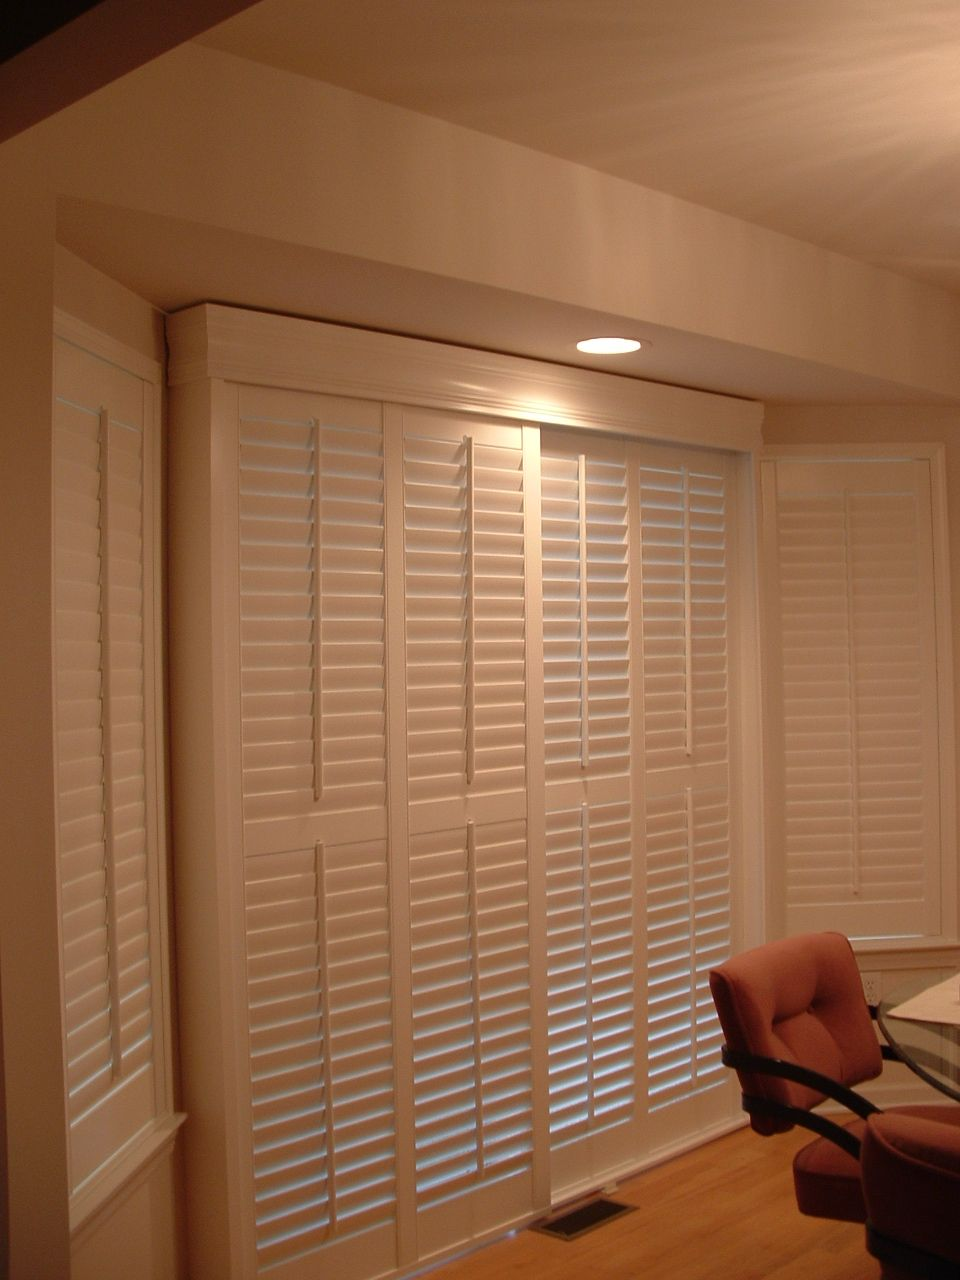 indoor shutters on track system shutters cortinas. Black Bedroom Furniture Sets. Home Design Ideas